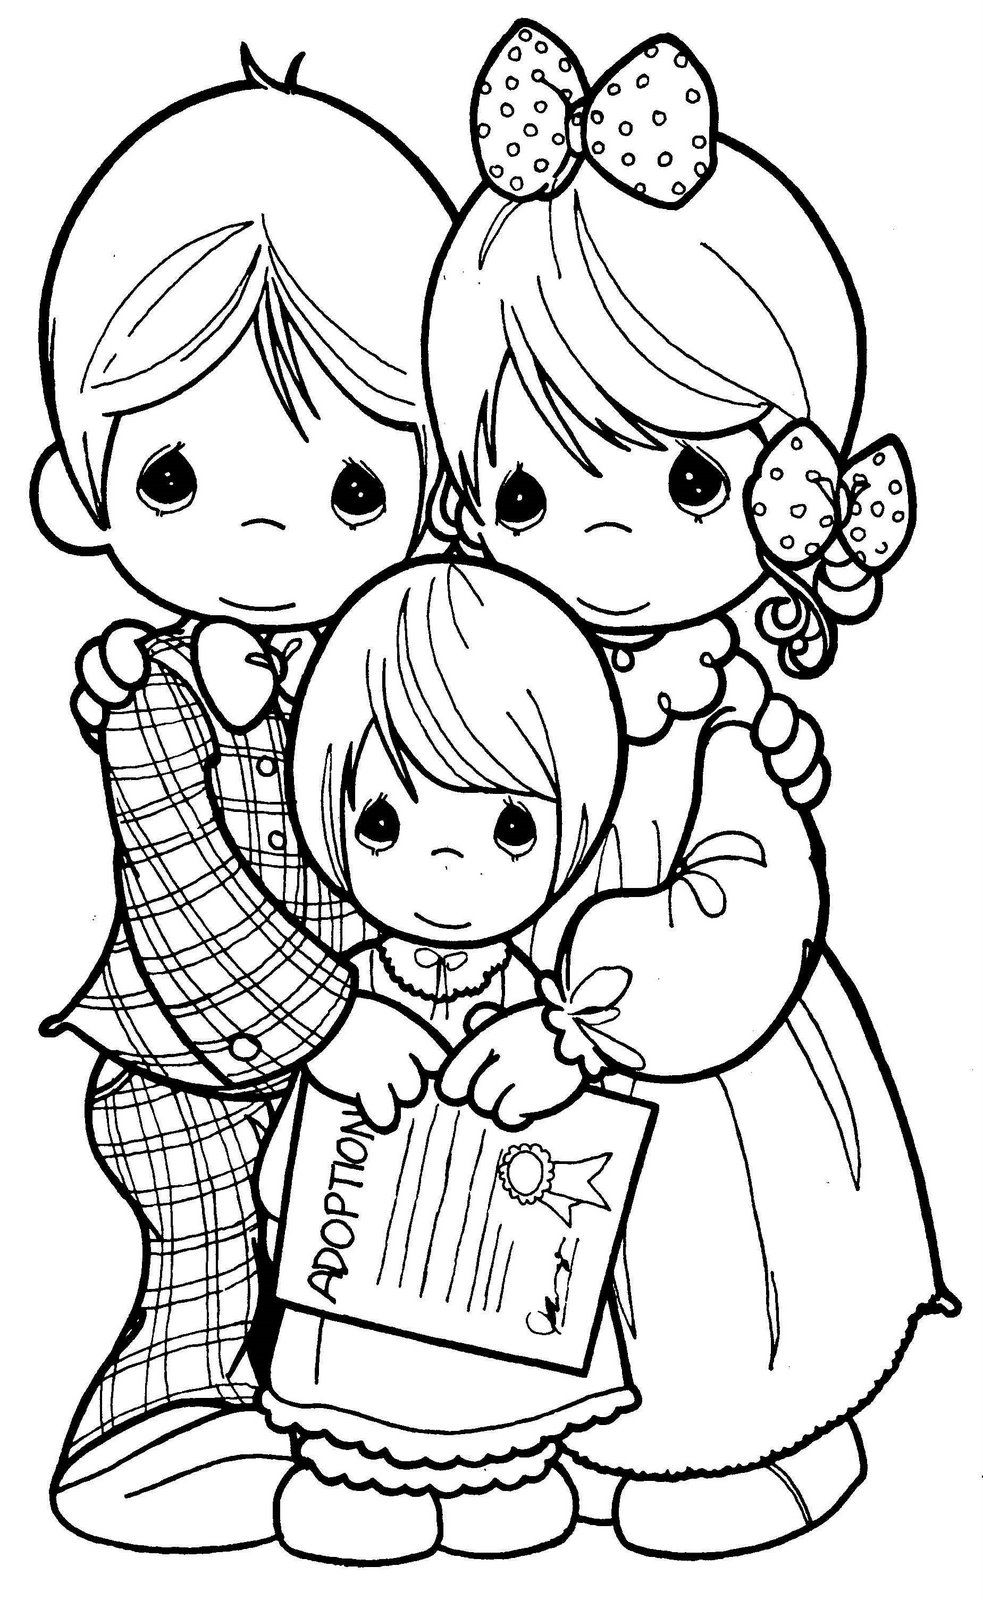 flores-divertidas.jpg (983×1600) | Coloring pages for Adults ...